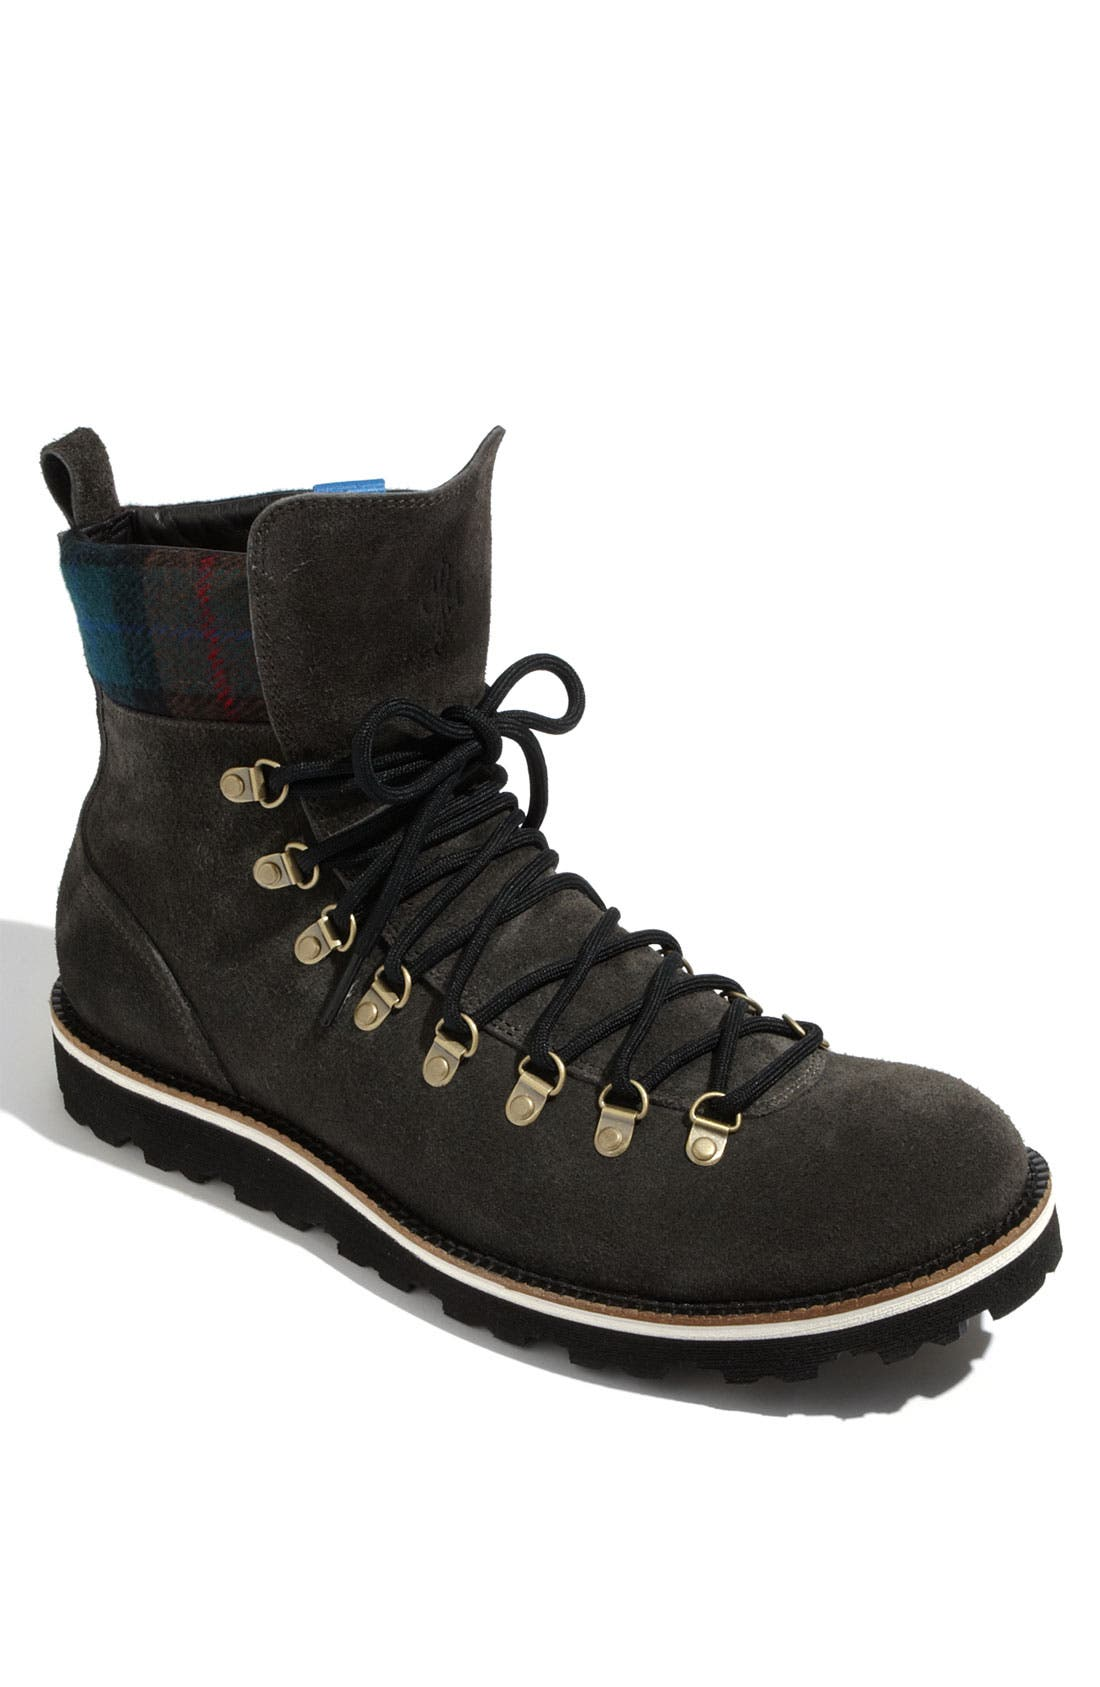 Main Image - Cole Haan 'Air Hunter' Hiking Boot (Men)